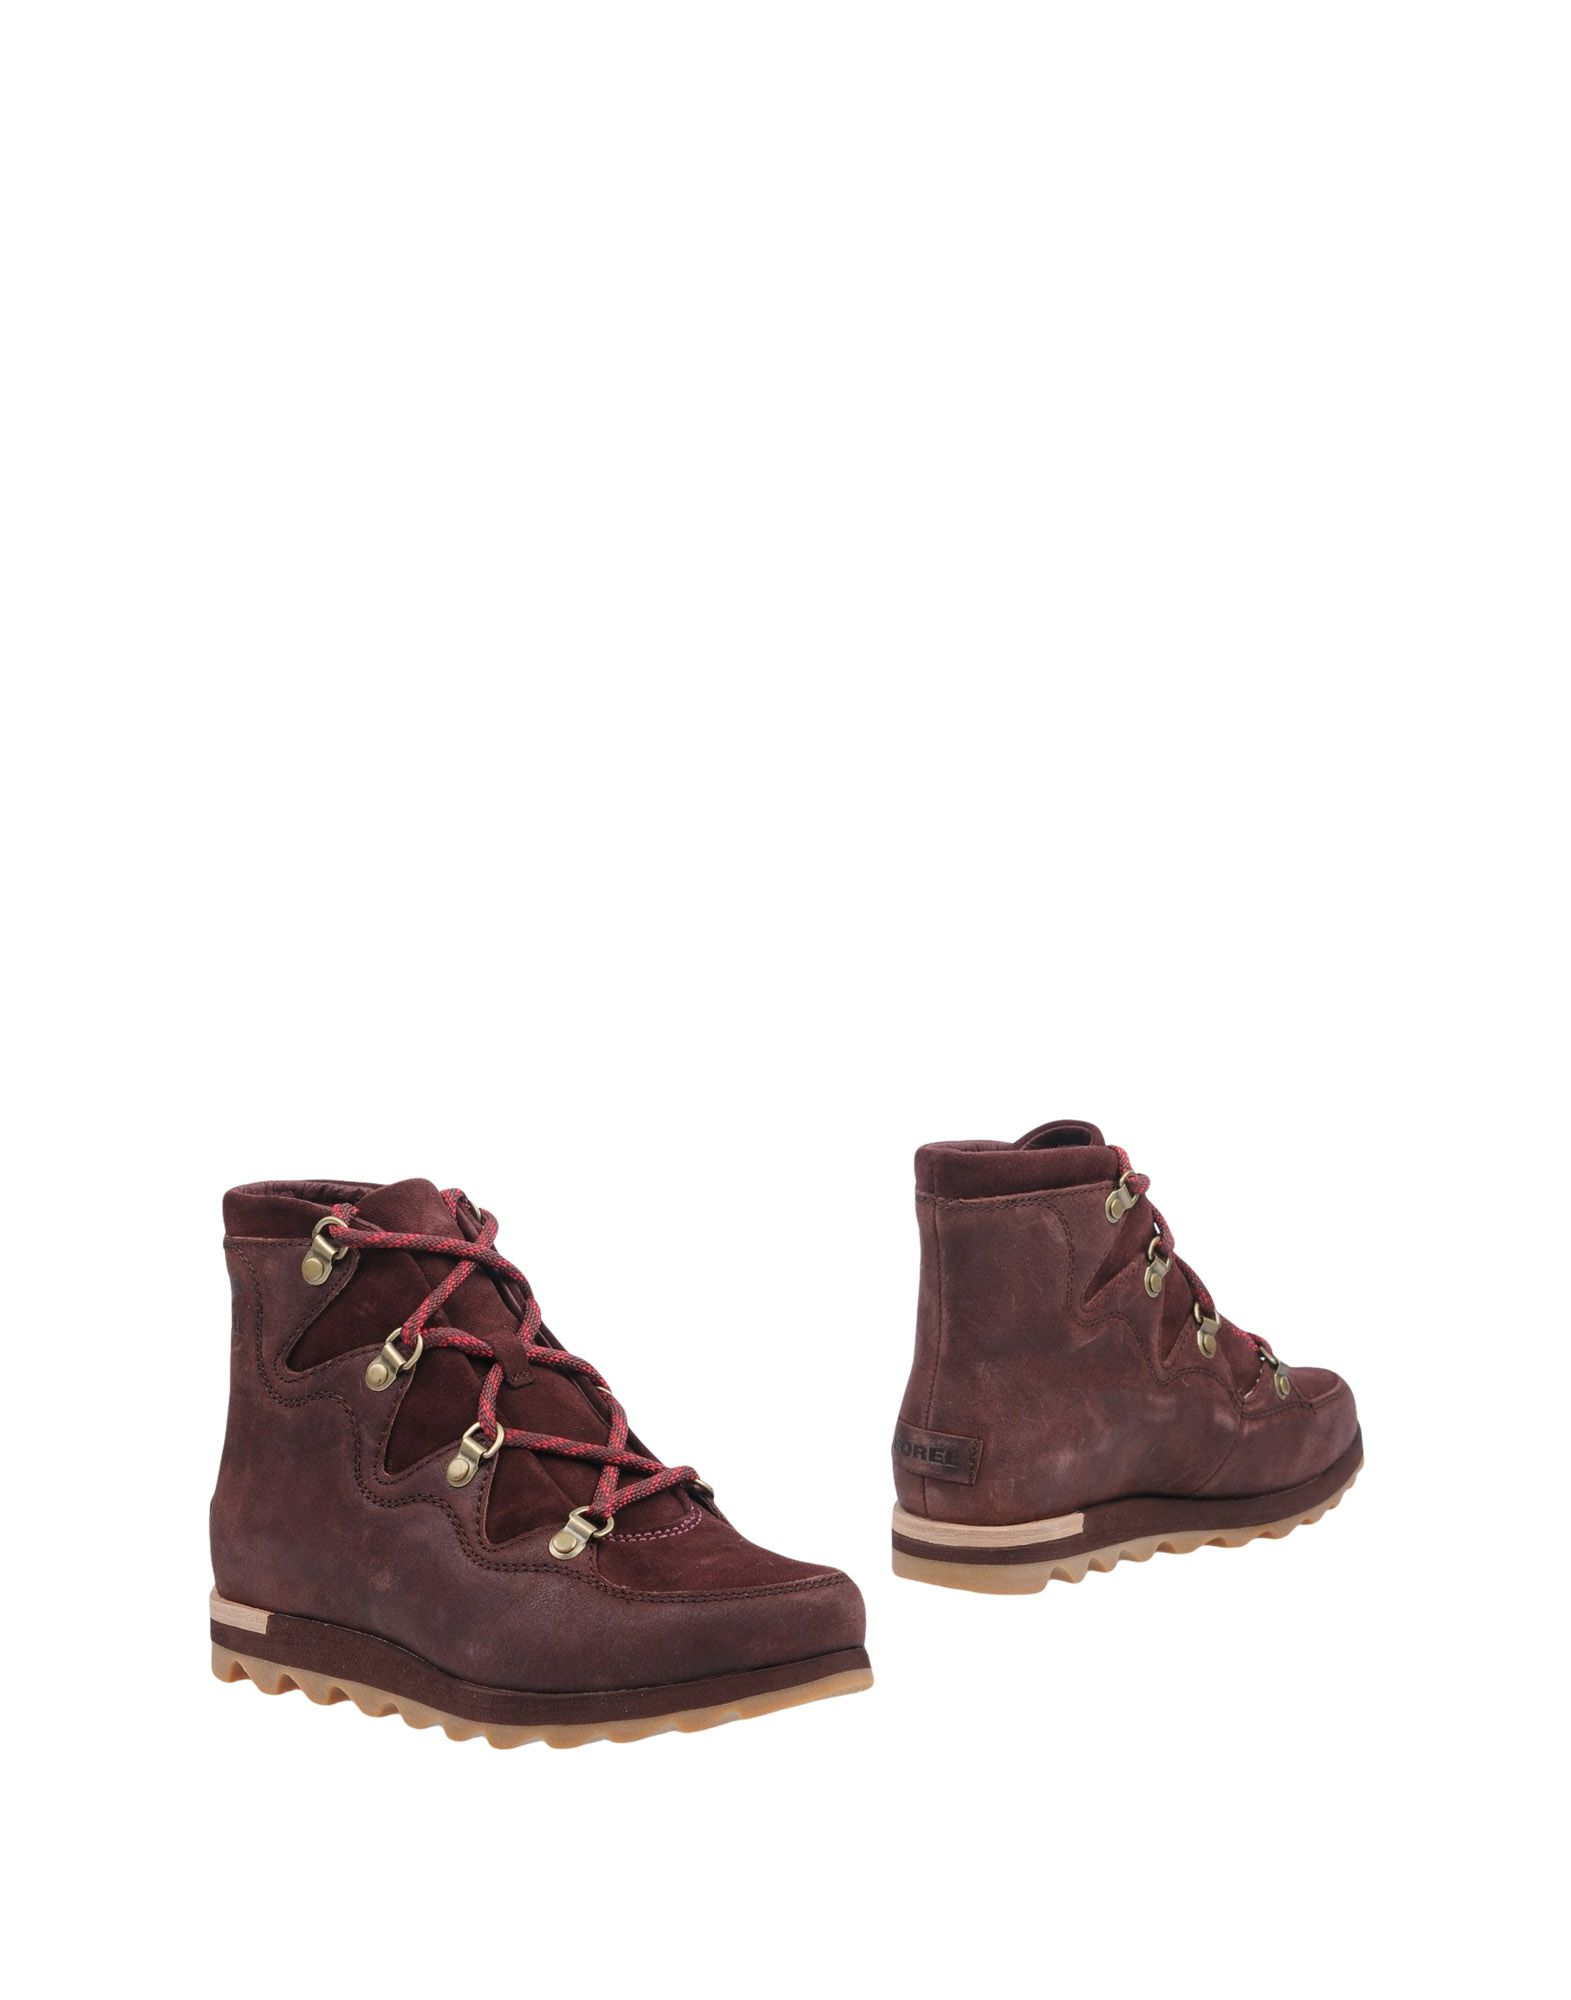 Bottine Sorel Femme - Bottines Sorel sur